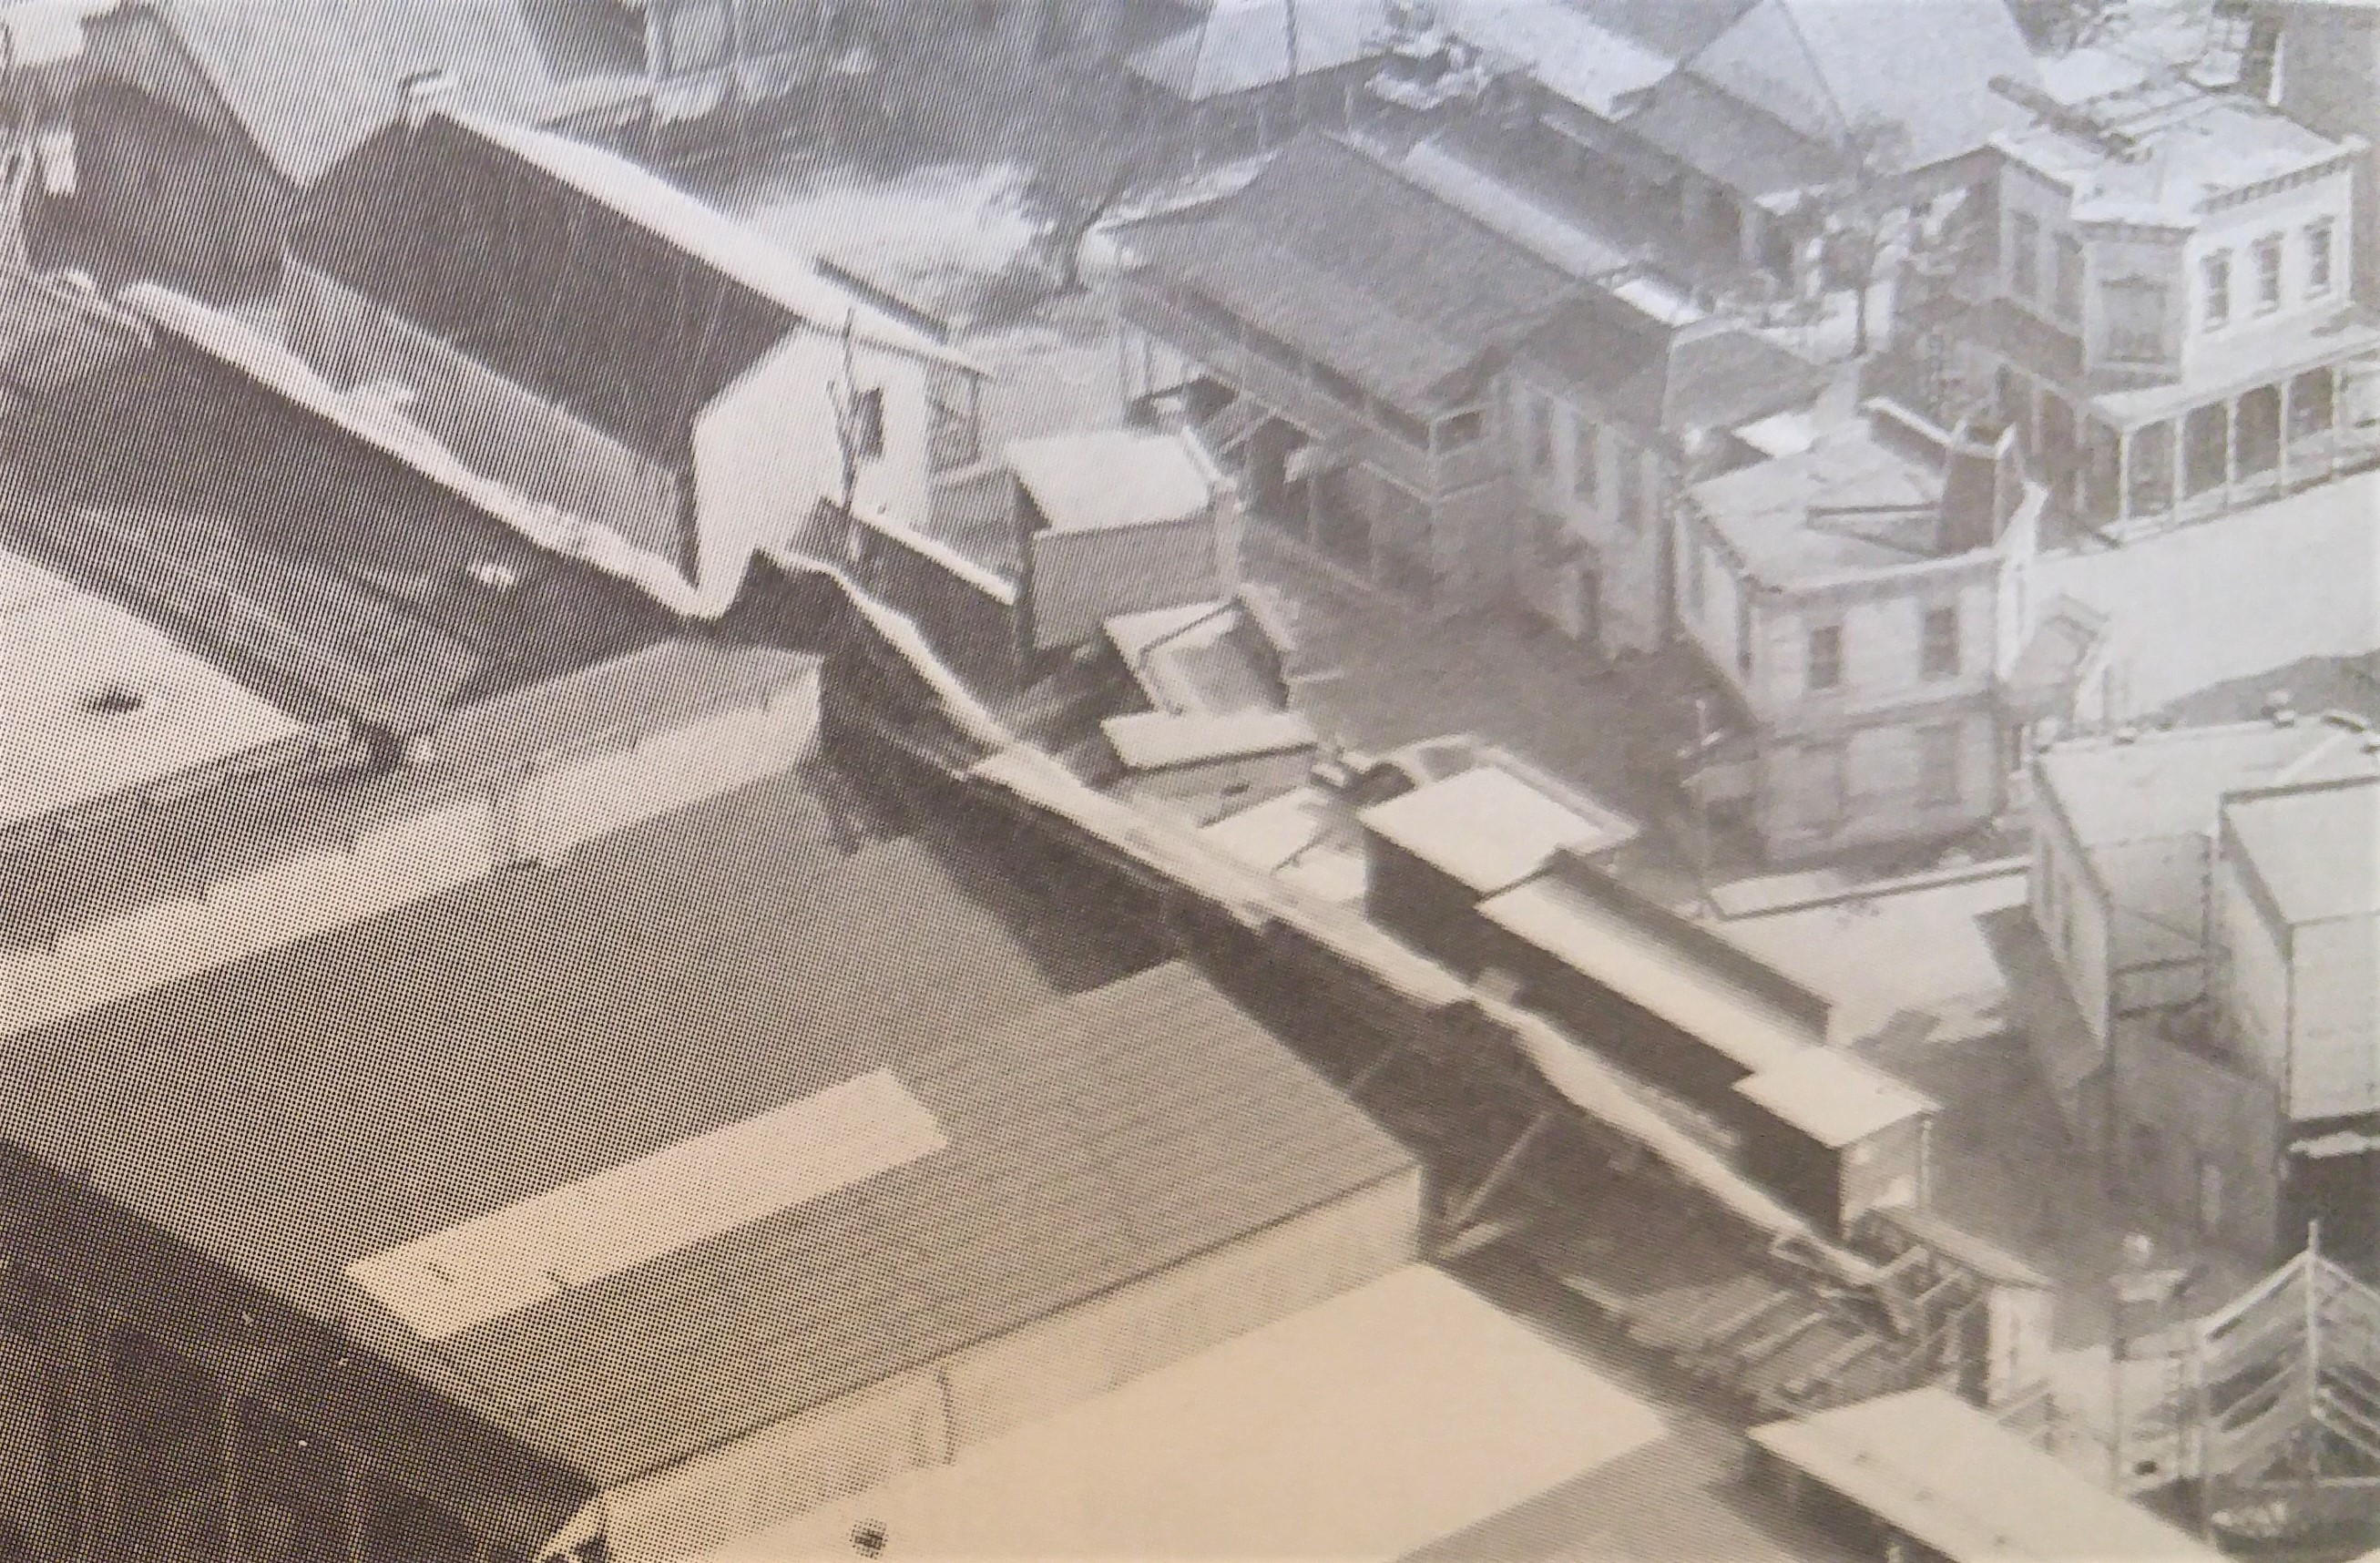 Paramount Backlot Aerial View 1960 - Close Up